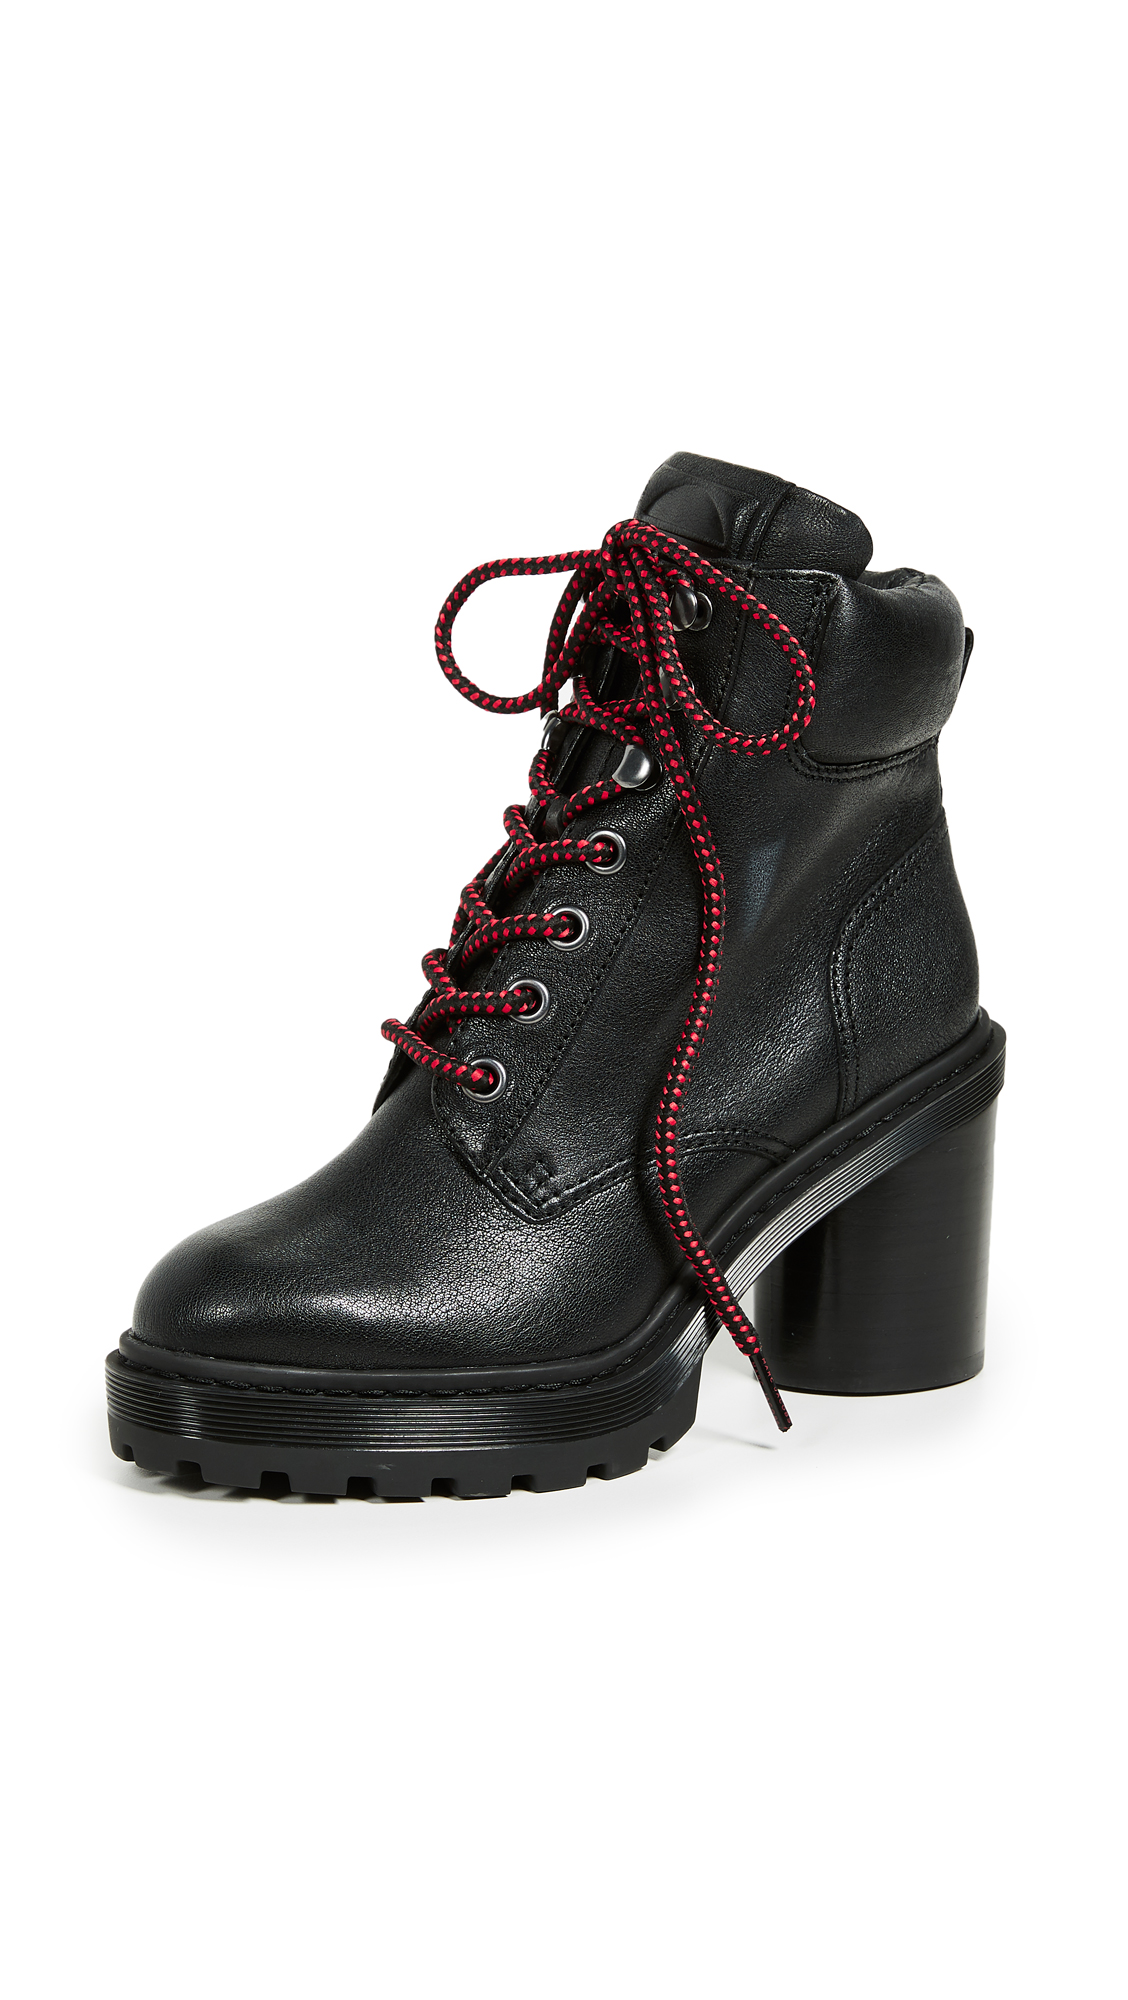 Marc Jacobs Crosby Hiking Boots - Black